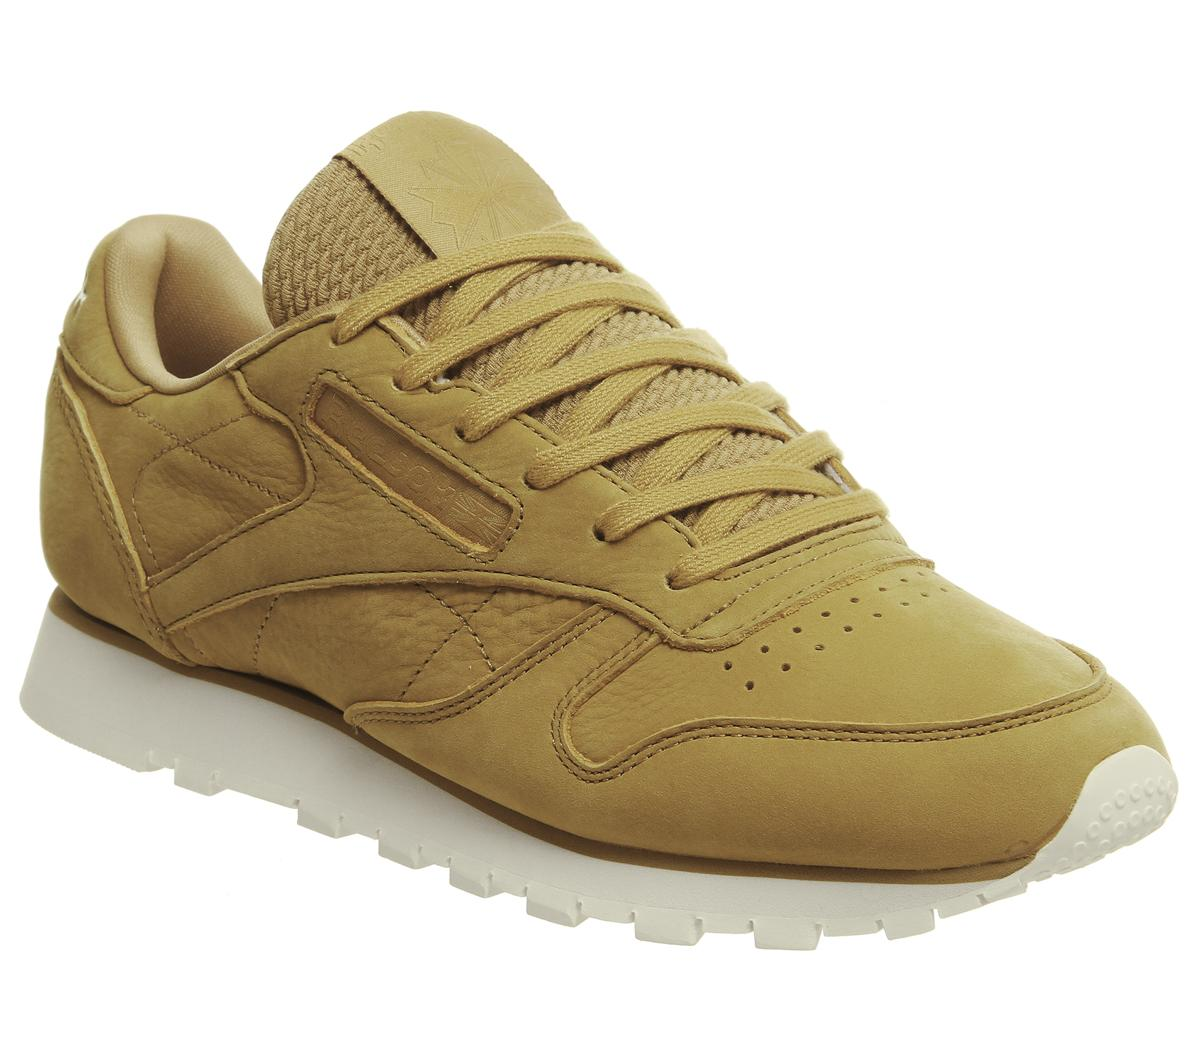 Reebok Classic Leather Trainers Wild